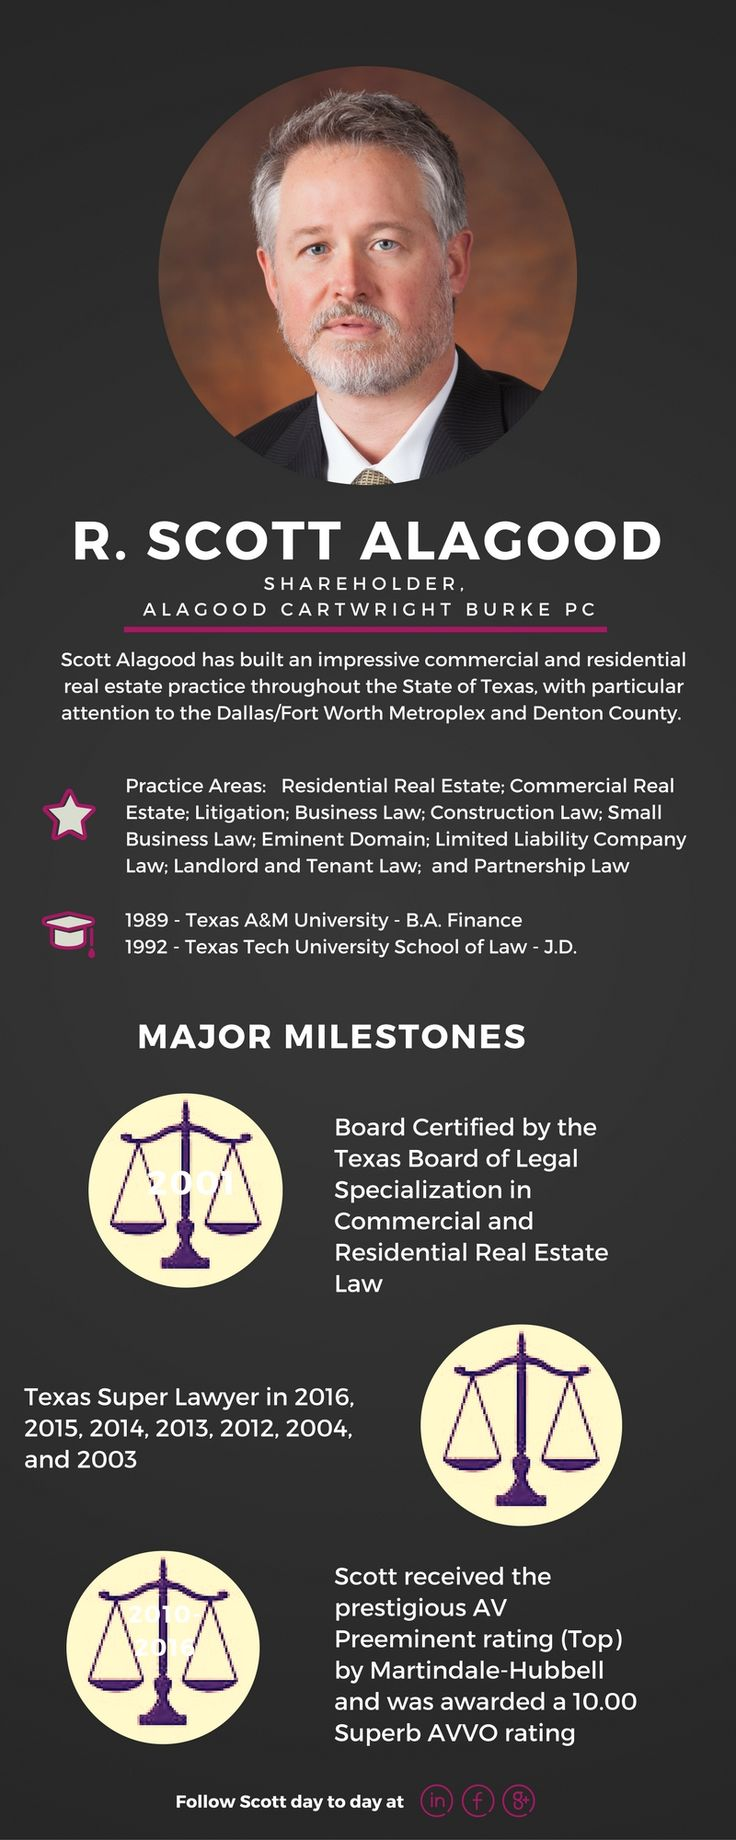 R Scott Alagood Is Board Certified By The Texas Board Of Leal Specialization In Commercial And Residenti Estate Law Small Business Law Residential Real Estate